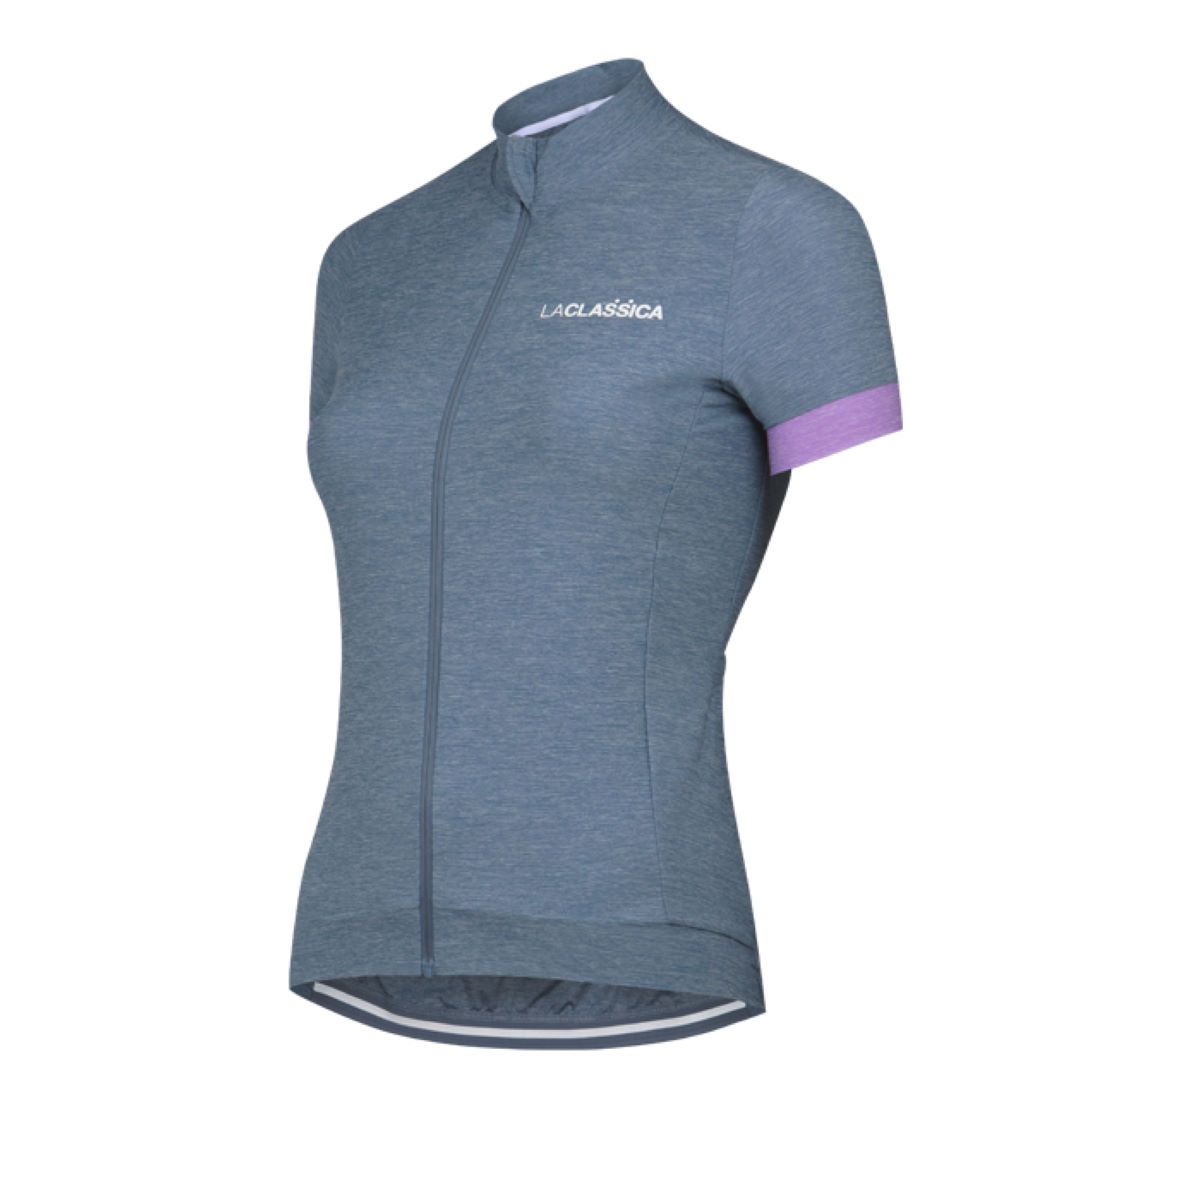 Image of Maillot Femme LaClassica Extra Light - M Deep Night | Maillots